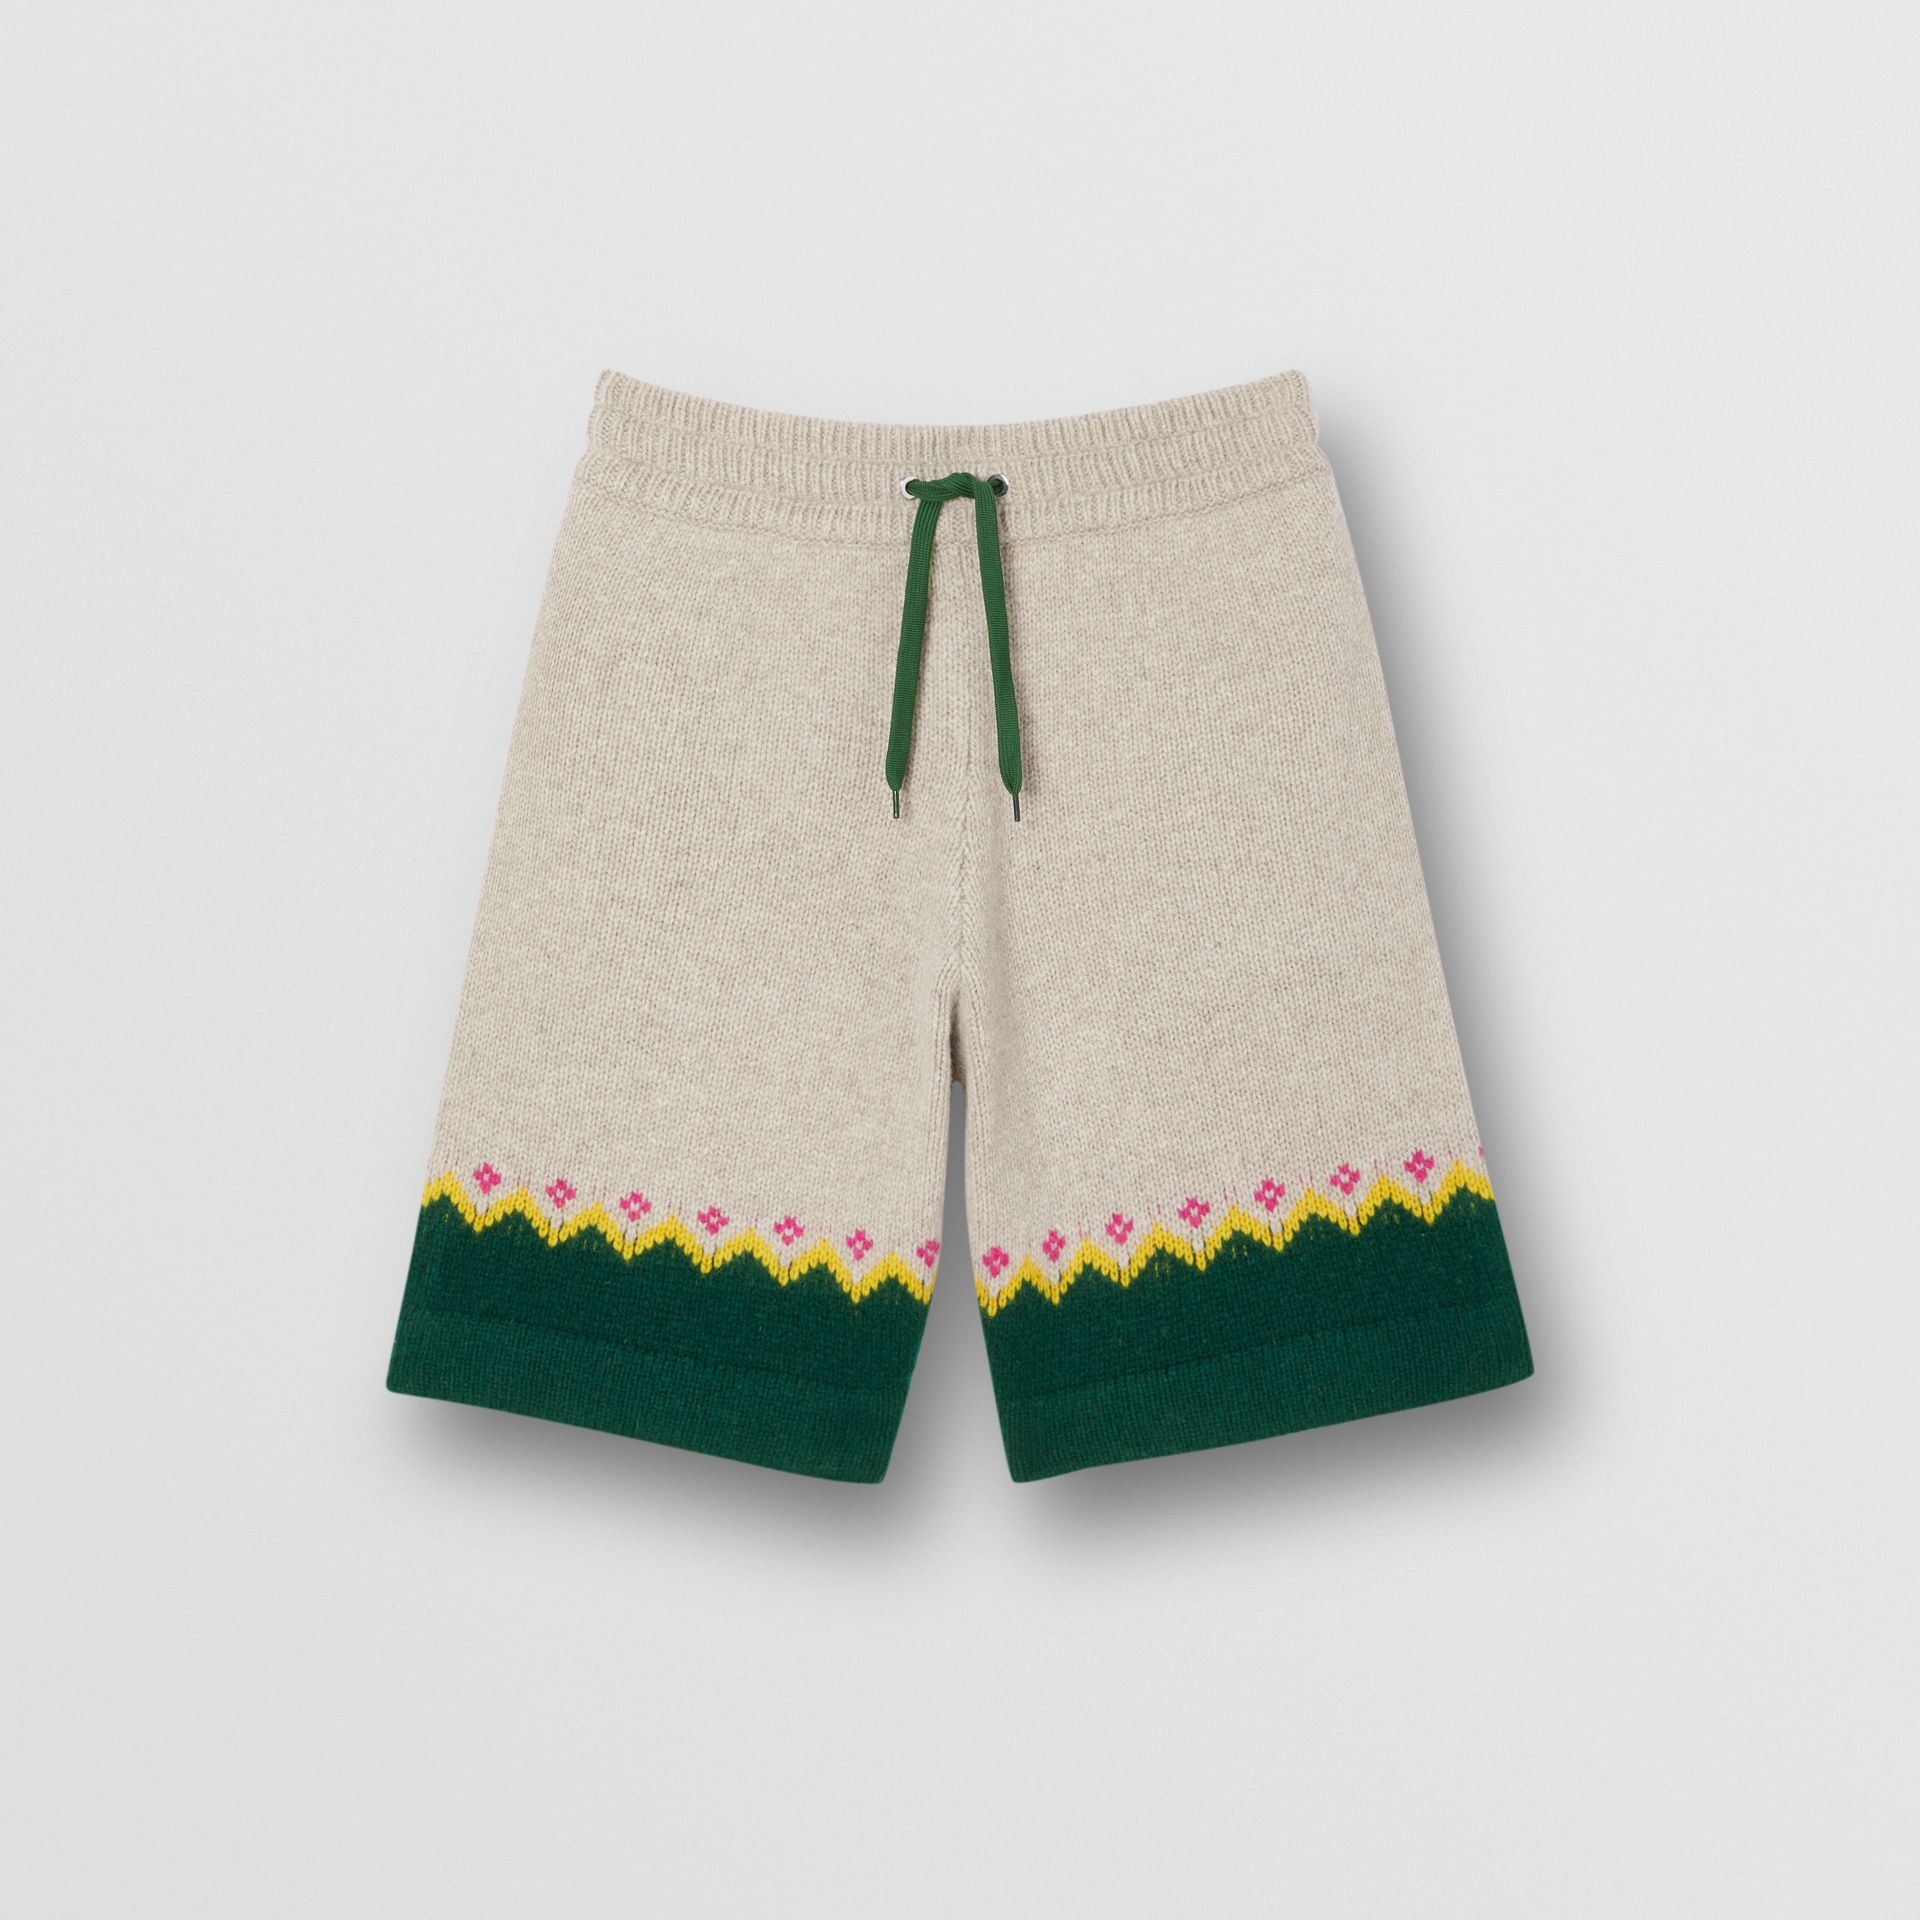 Fair Isle Wool Drawcord Shorts in Sesame - Men | Burberry Hong Kong S.A.R - gallery image 3